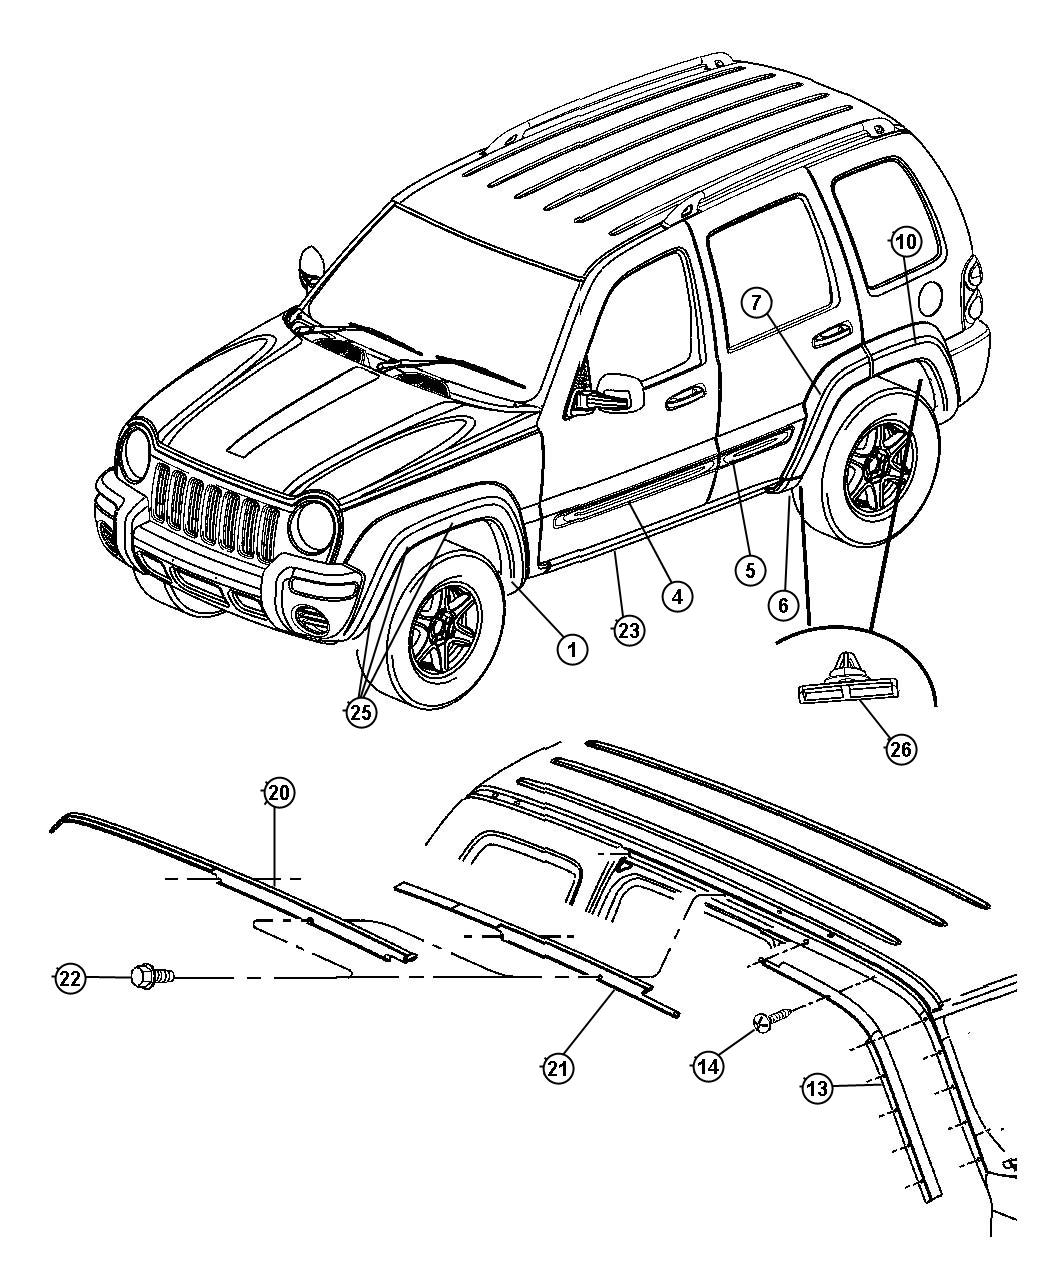 jeep liberty aftermarket auto parts diagrams